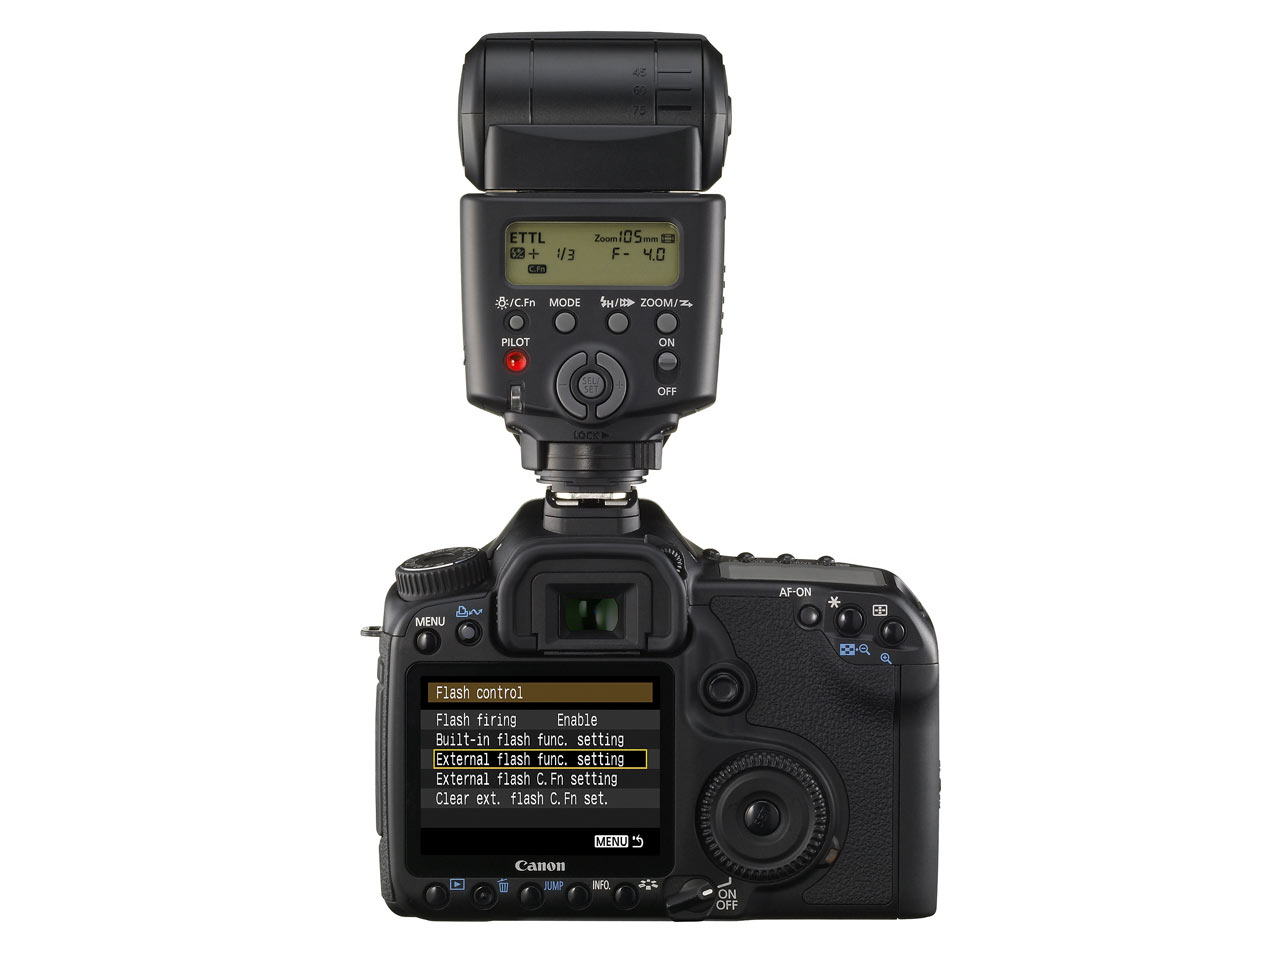 canon announces speedlite 430ex ii flash digital photography review rh dpreview com canon speedlite 430ex iii-rt flash manual canon speedlite 430ex ii flash user manual